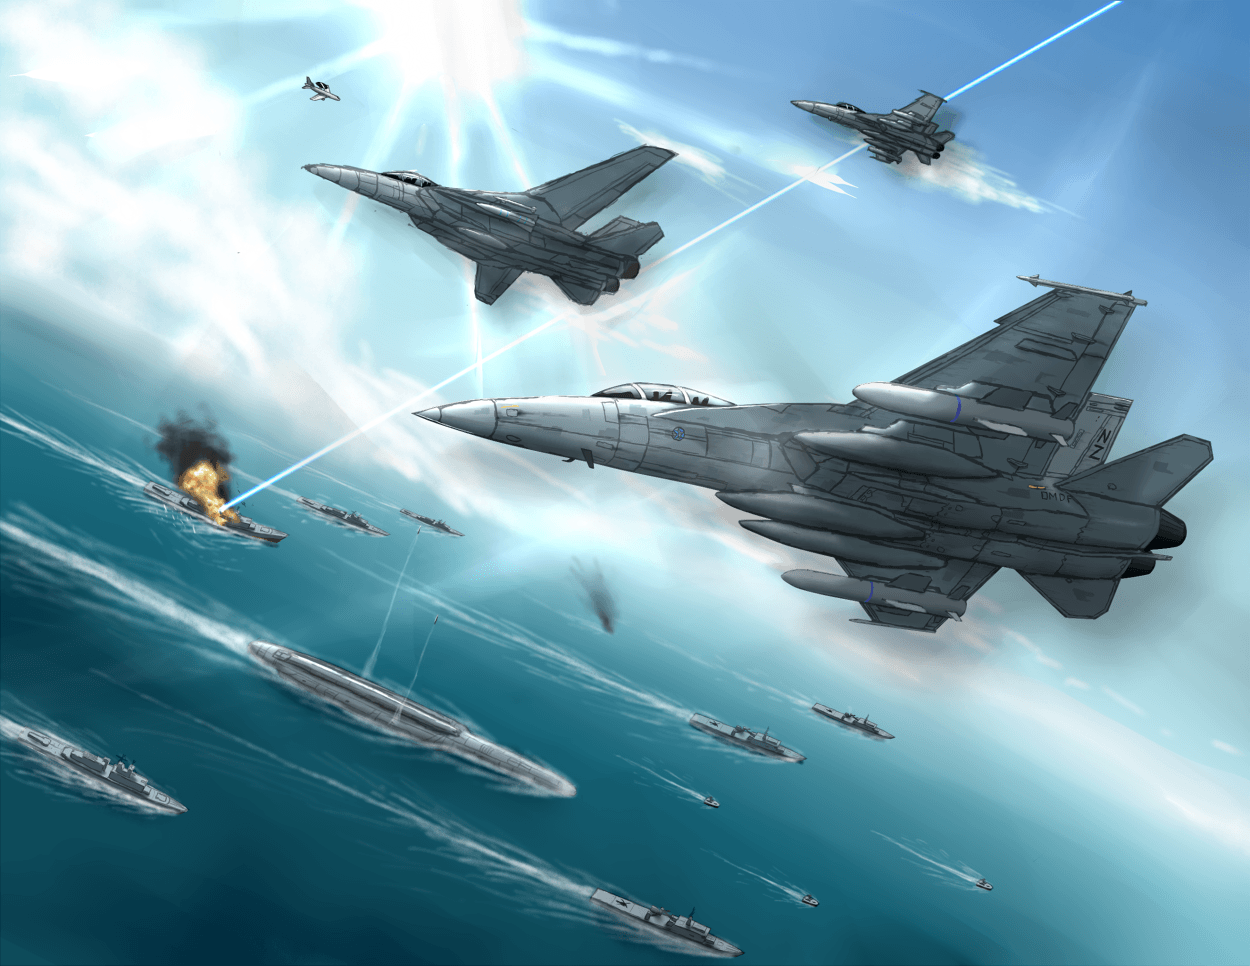 Ace Combat Wallpapers - Wallpaper Cave